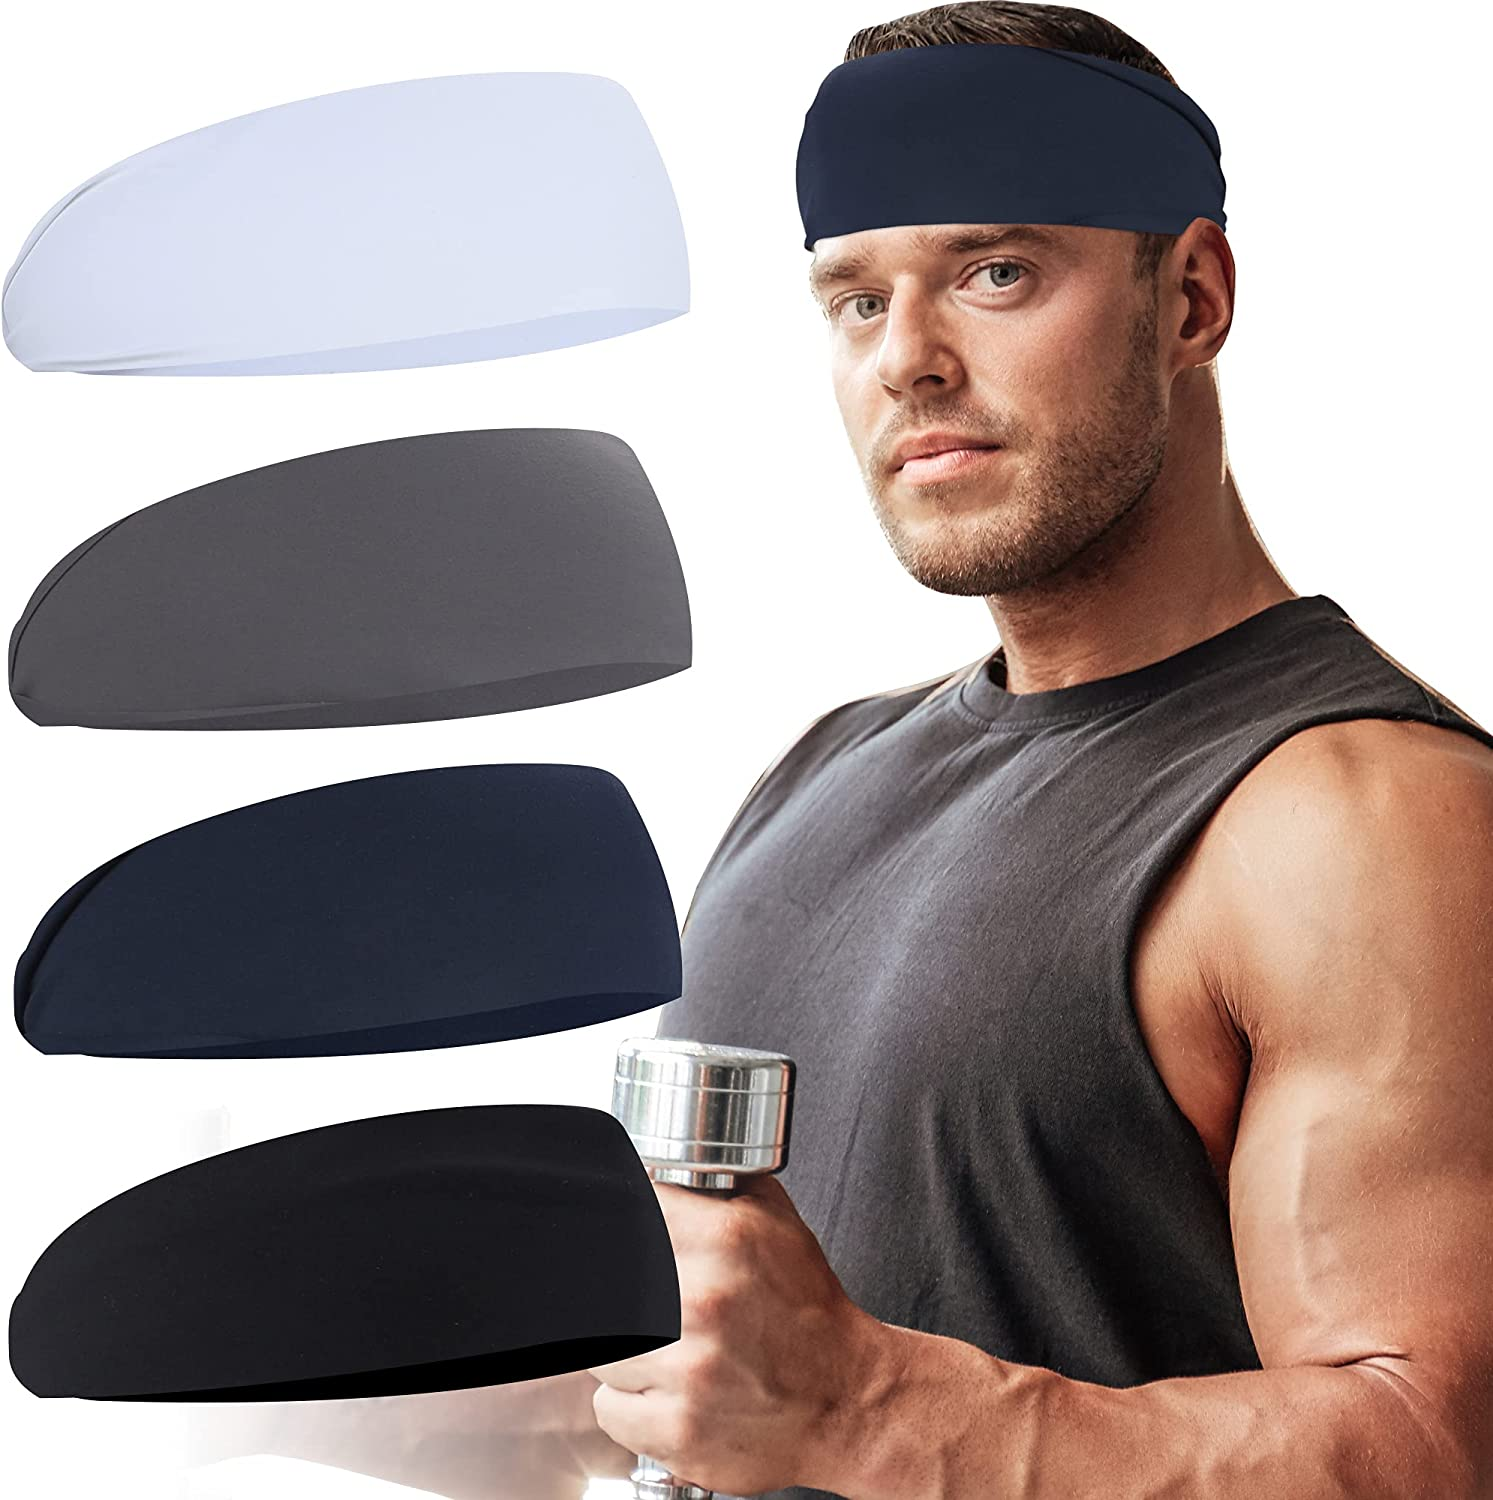 Hoogalife New products, world's highest quality popular! Mens Headbands Sports Stretchy for Headband online shopping Runn Sweat